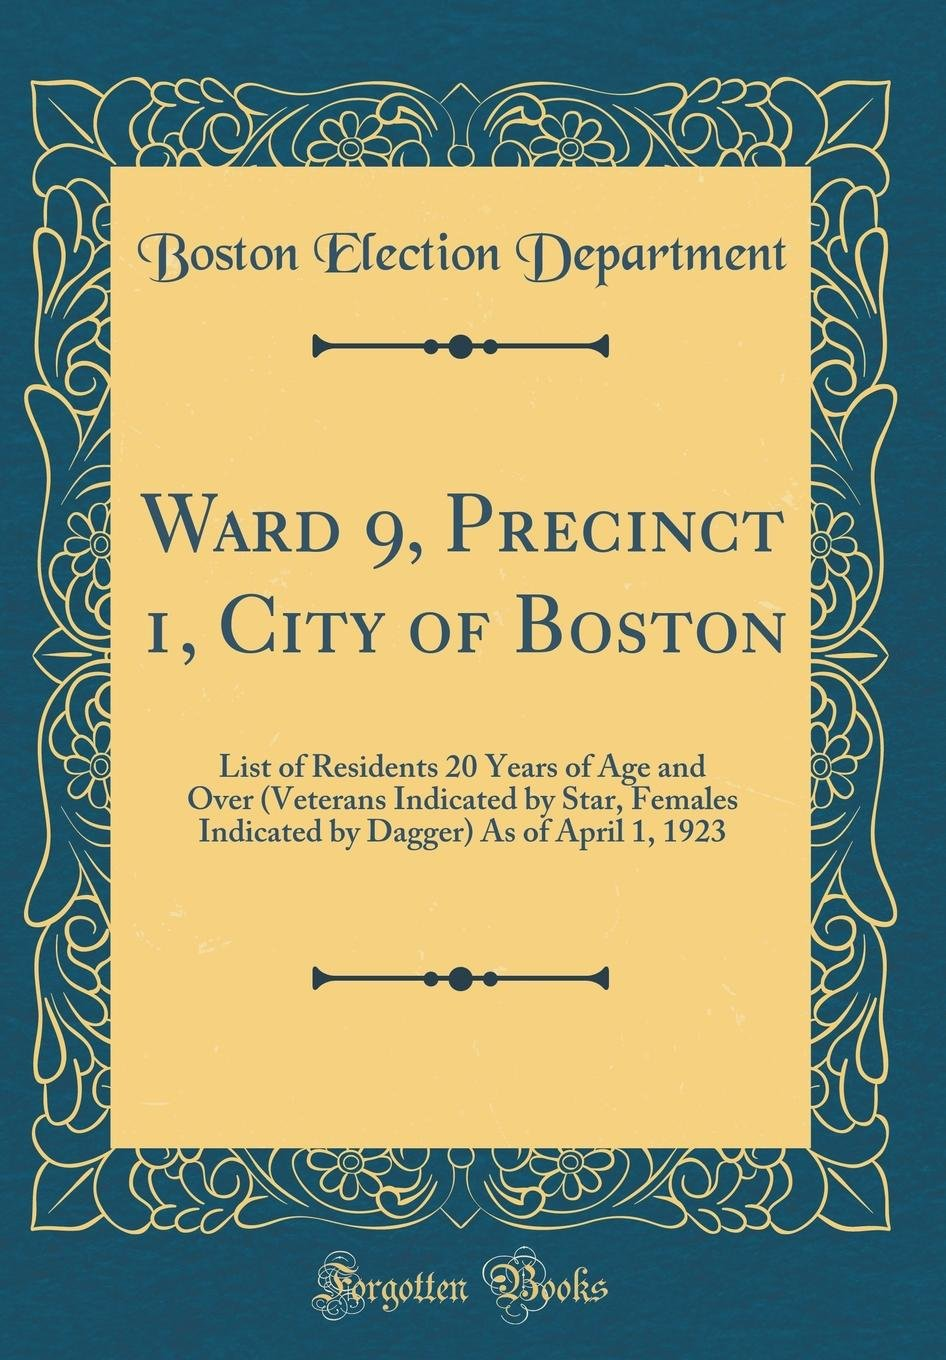 Download Ward 9, Precinct 1, City of Boston: List of Residents 20 Years of Age and Over (Veterans Indicated by Star, Females Indicated by Dagger) As of April 1, 1923 (Classic Reprint) pdf epub